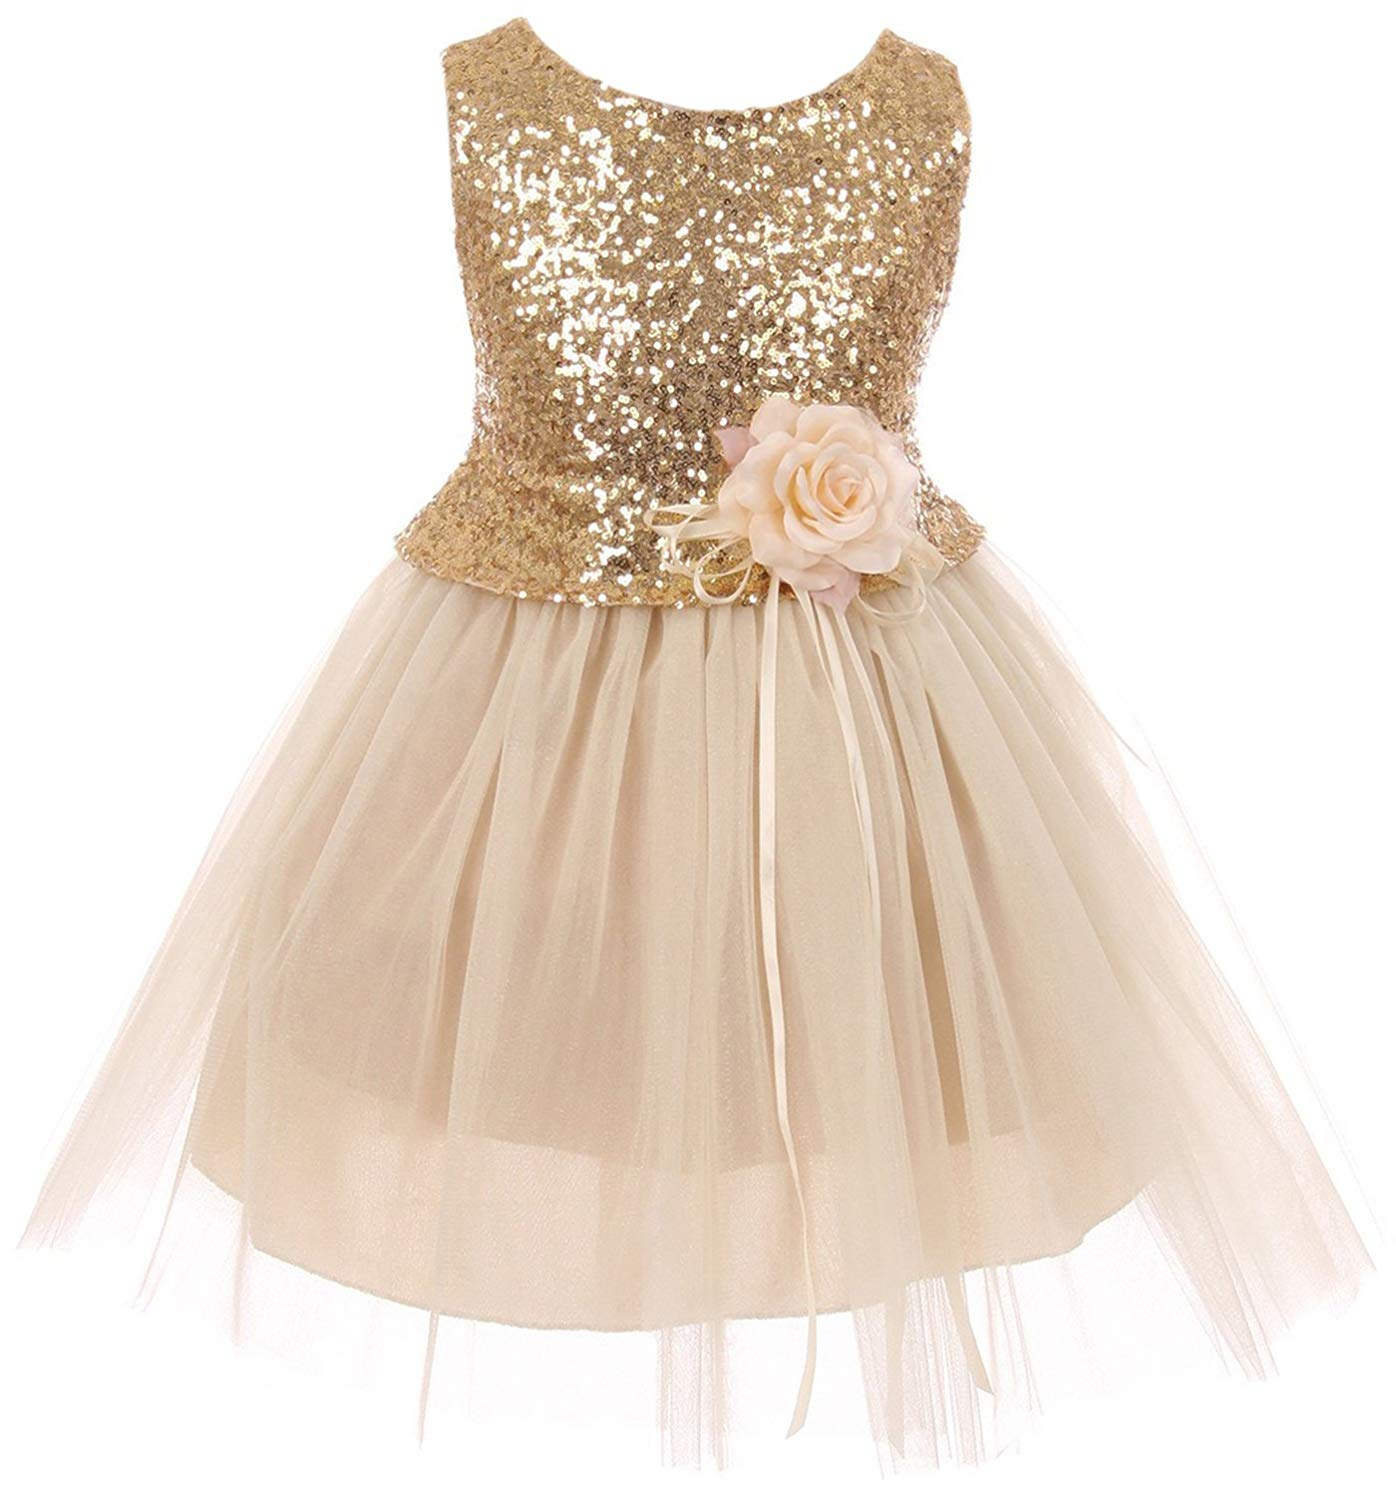 Dreamer Girls Dress Sequins Glitter Floral Tulle Pageant Party Flower Girl Dress